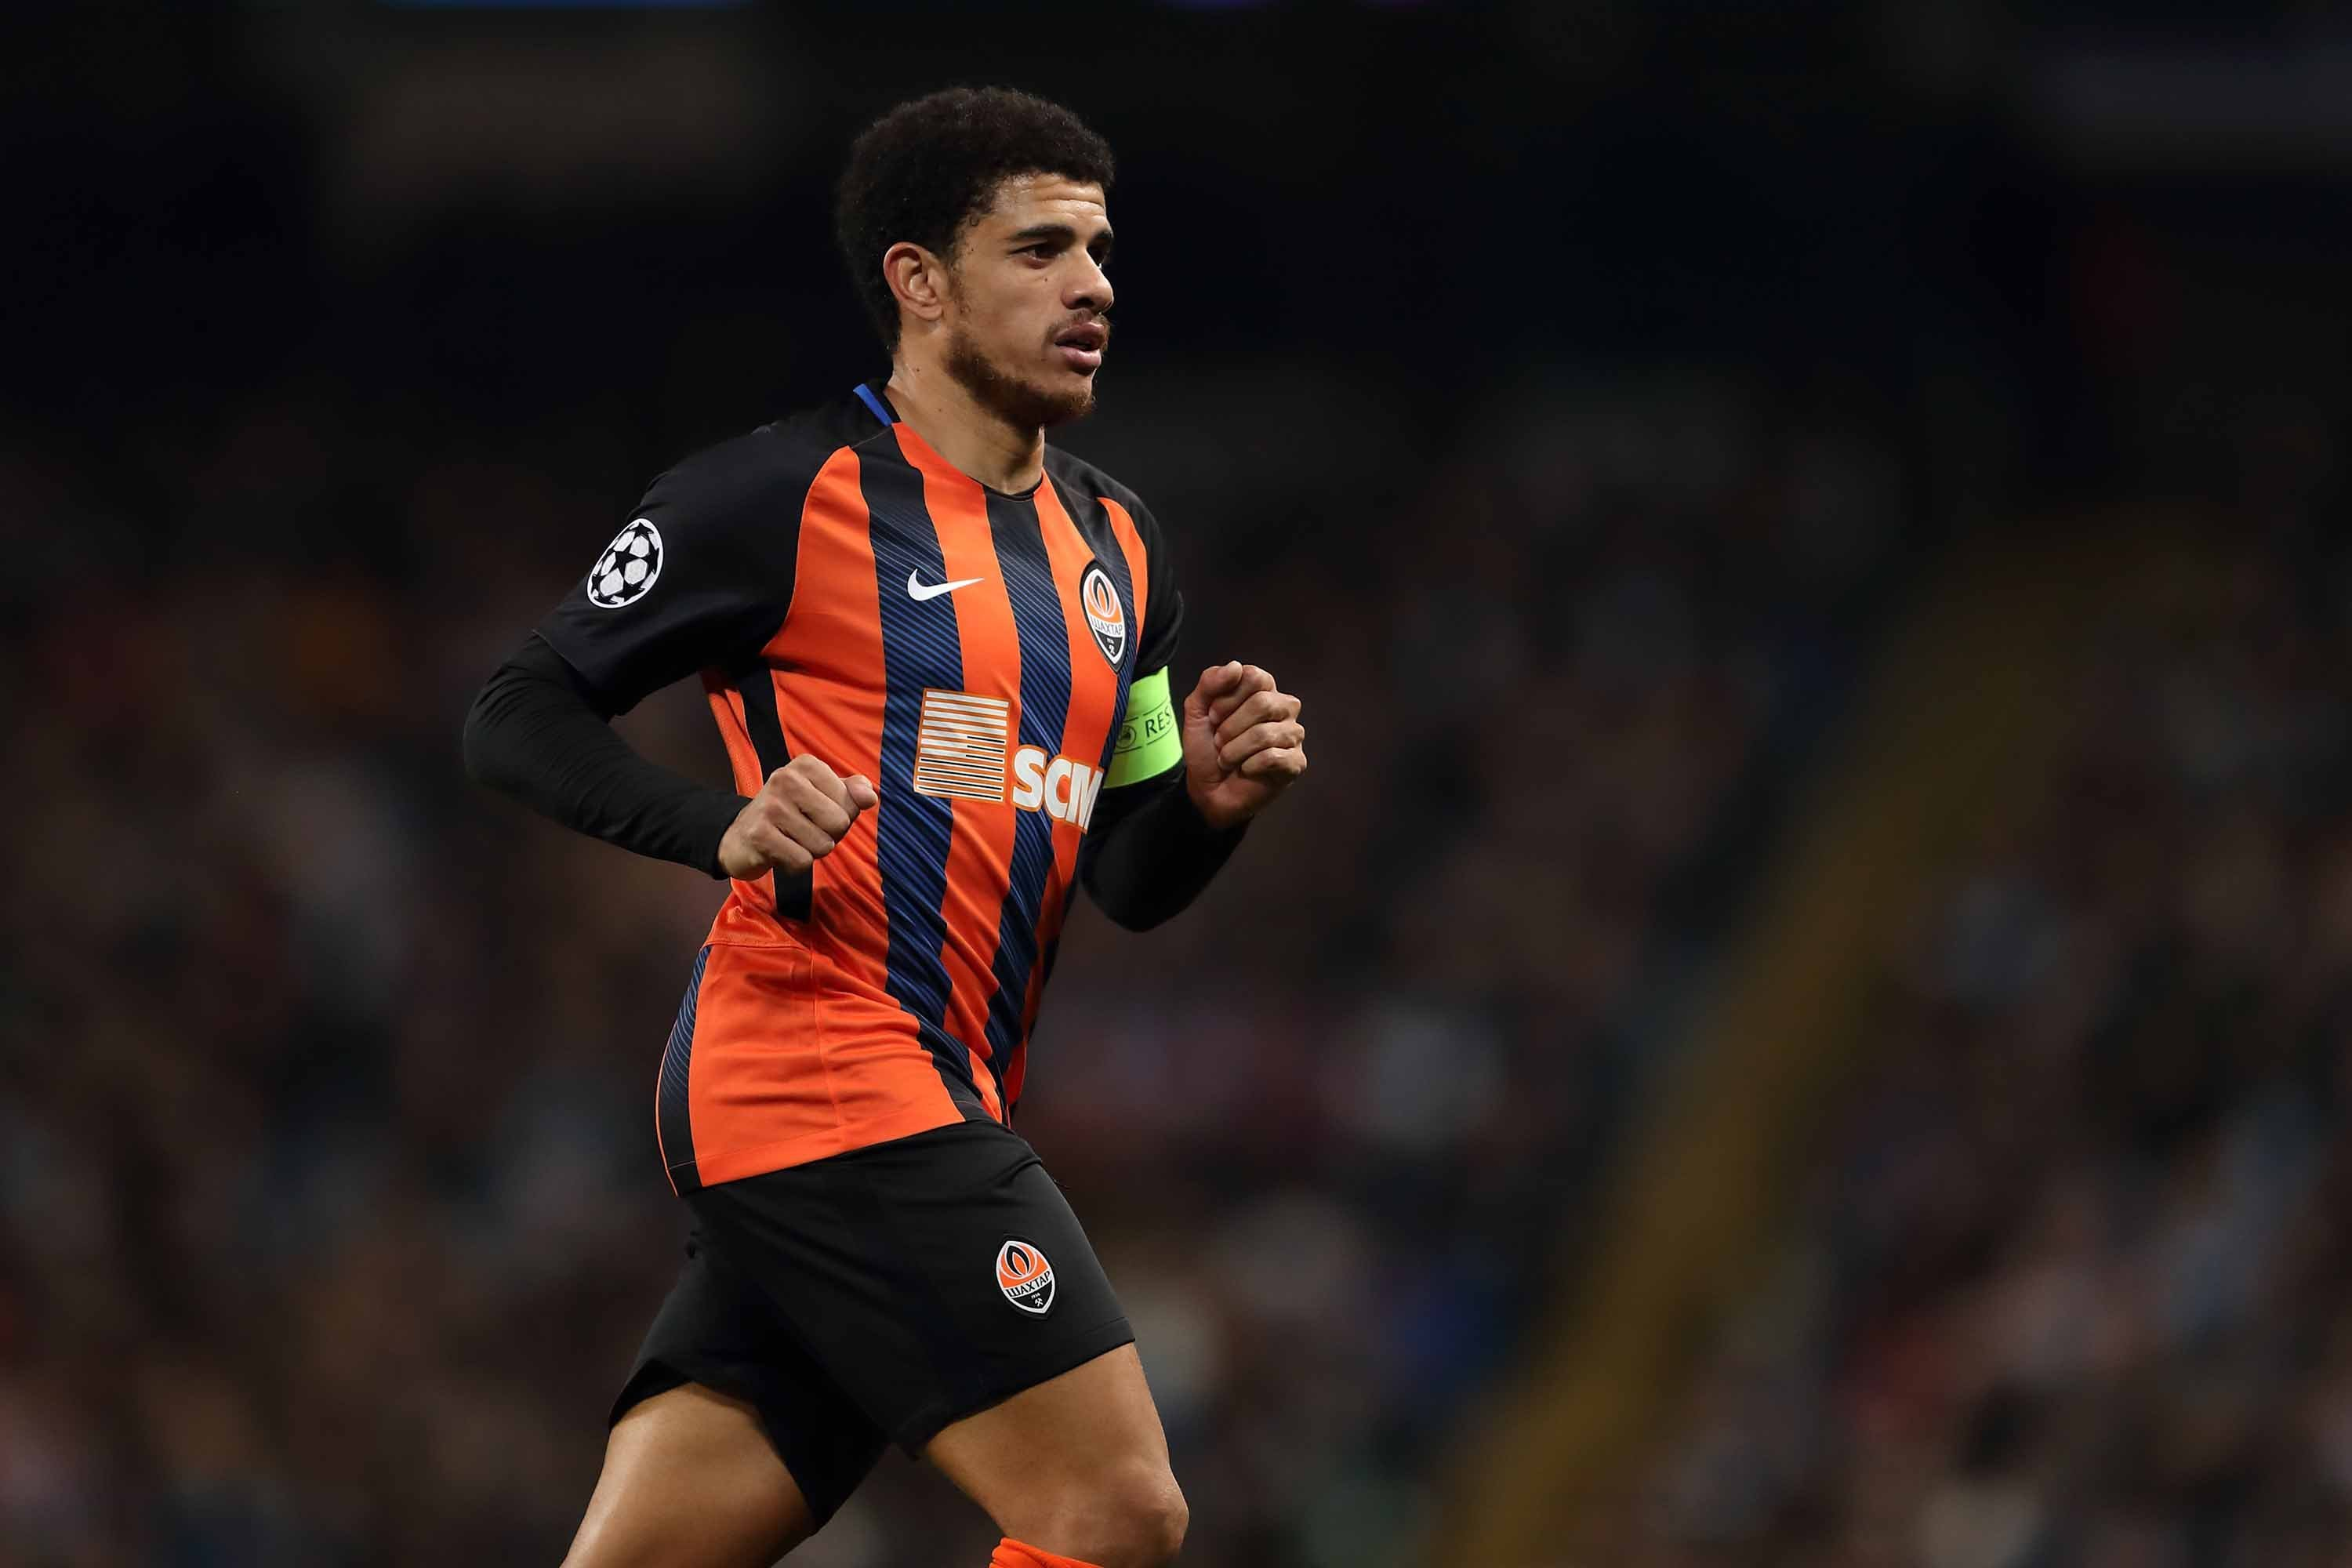 Shakhtar Donetsk midfielder Taison sent off for reacting to racist abuse